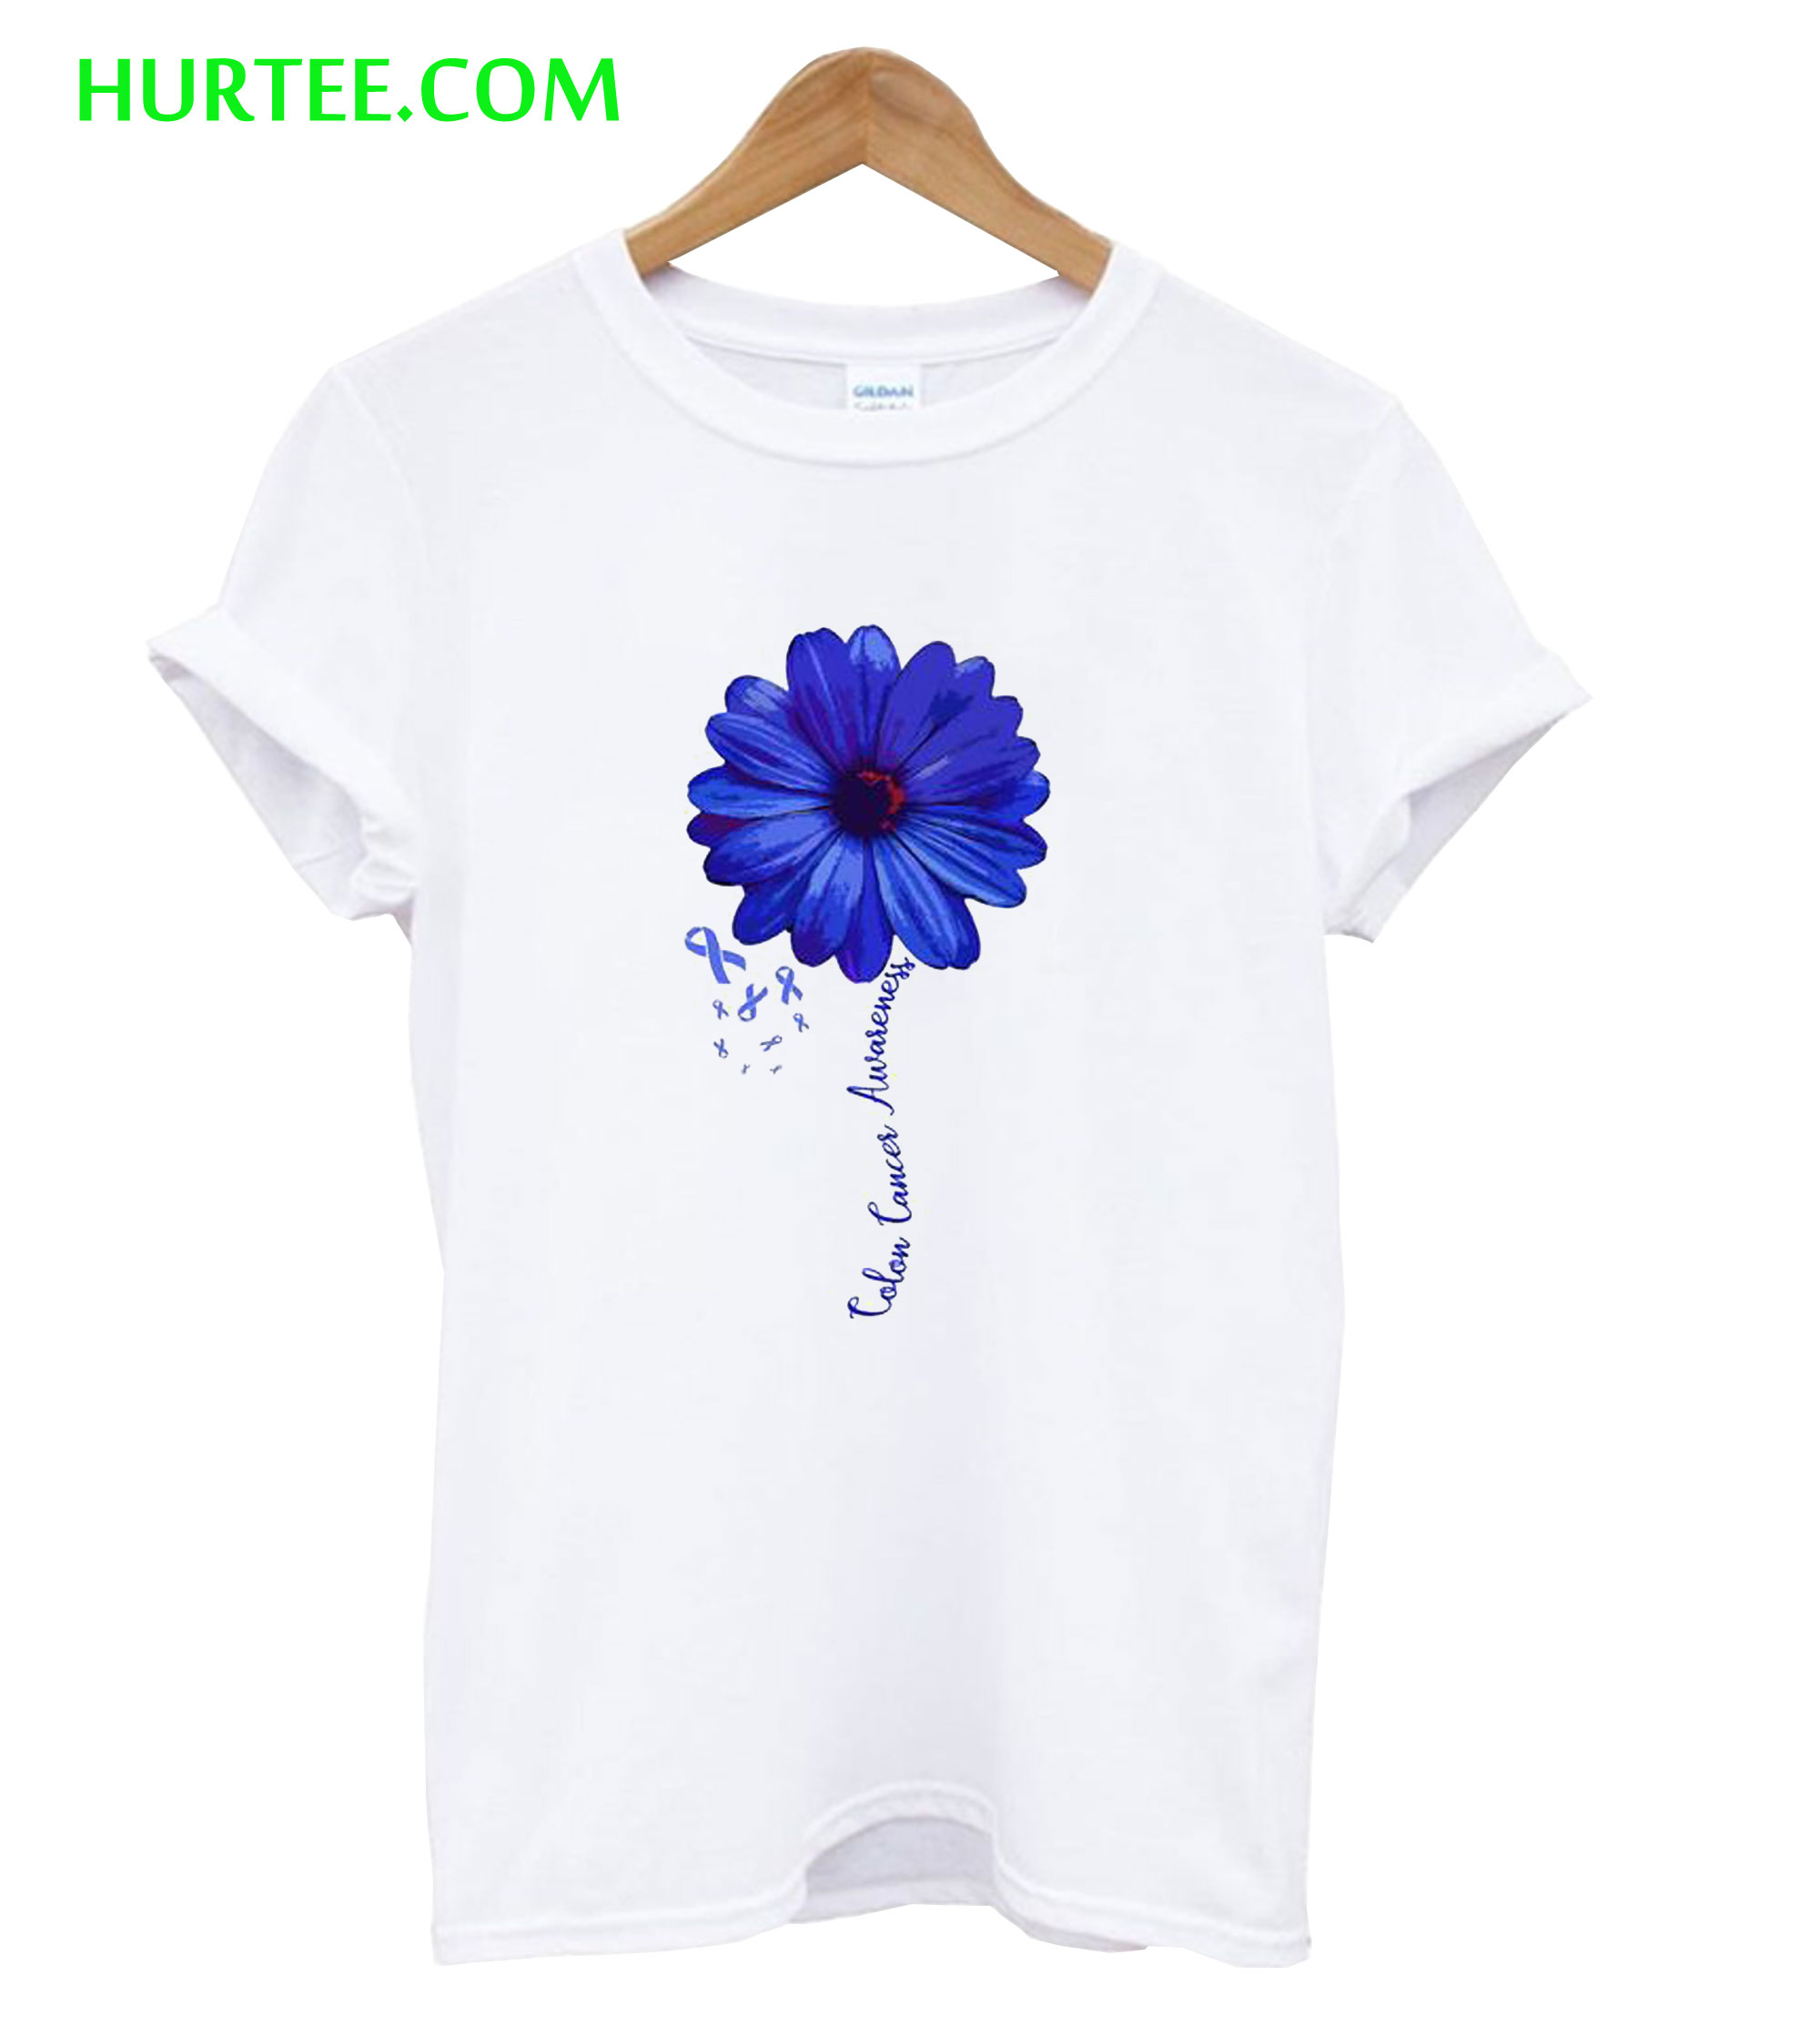 Colon Cancer Awareness T Shirt